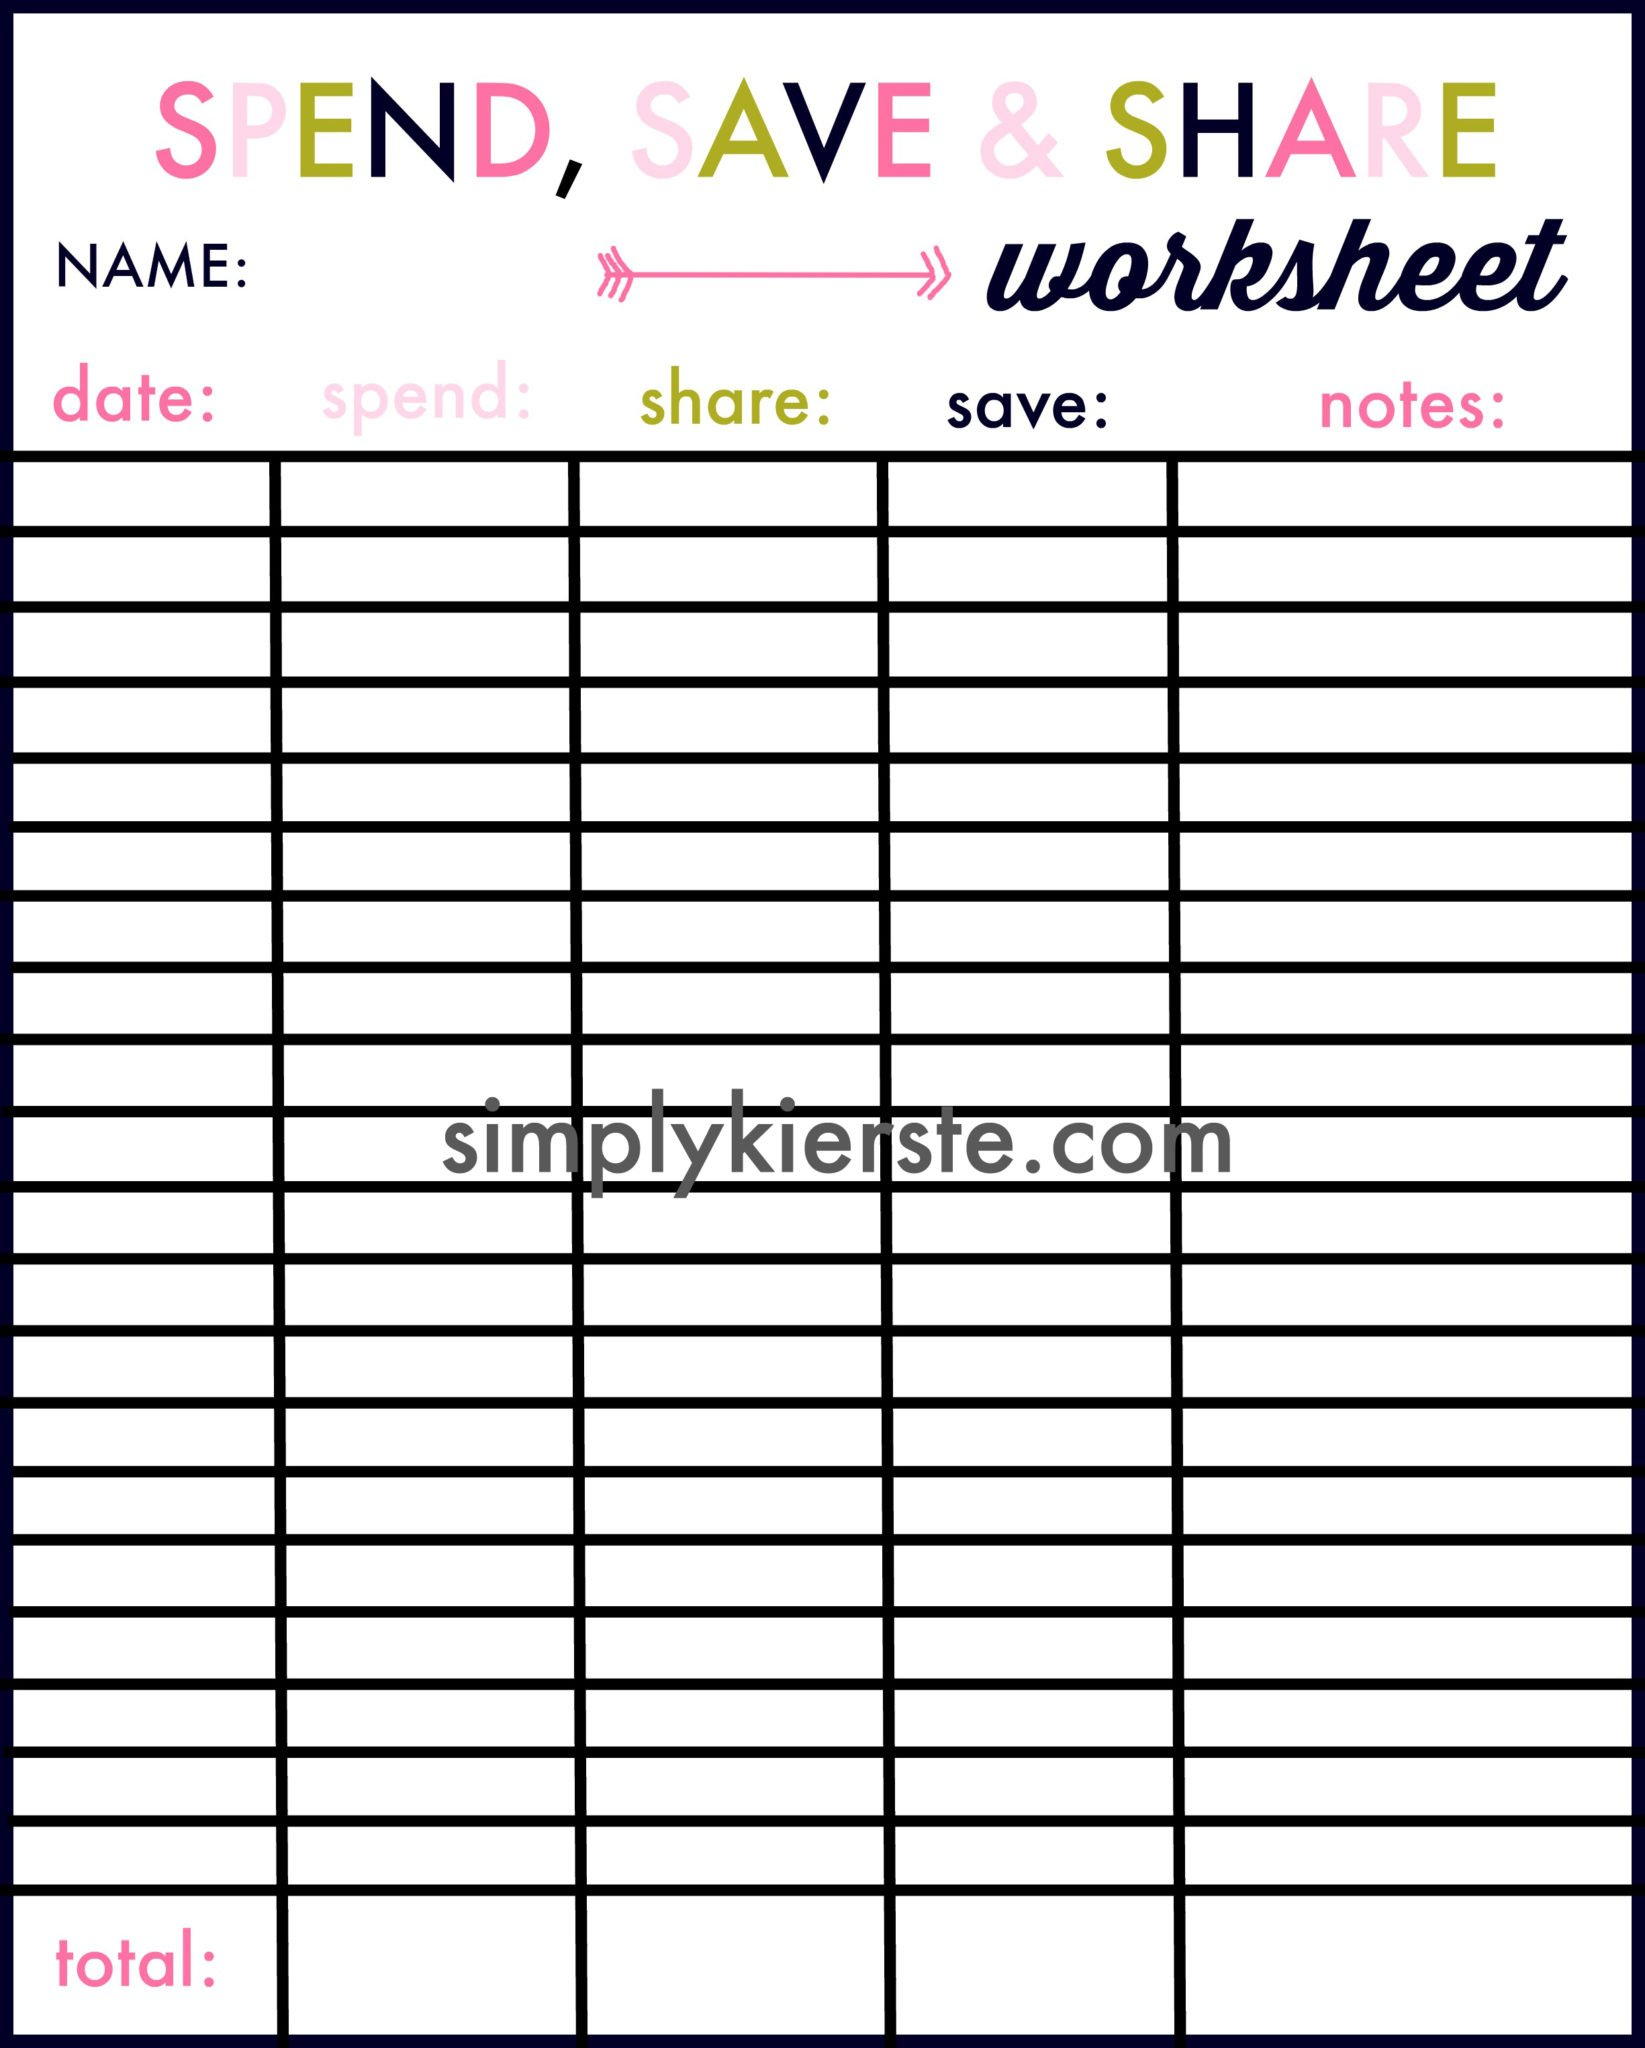 save spend share savings worksheet | simplykierste.com